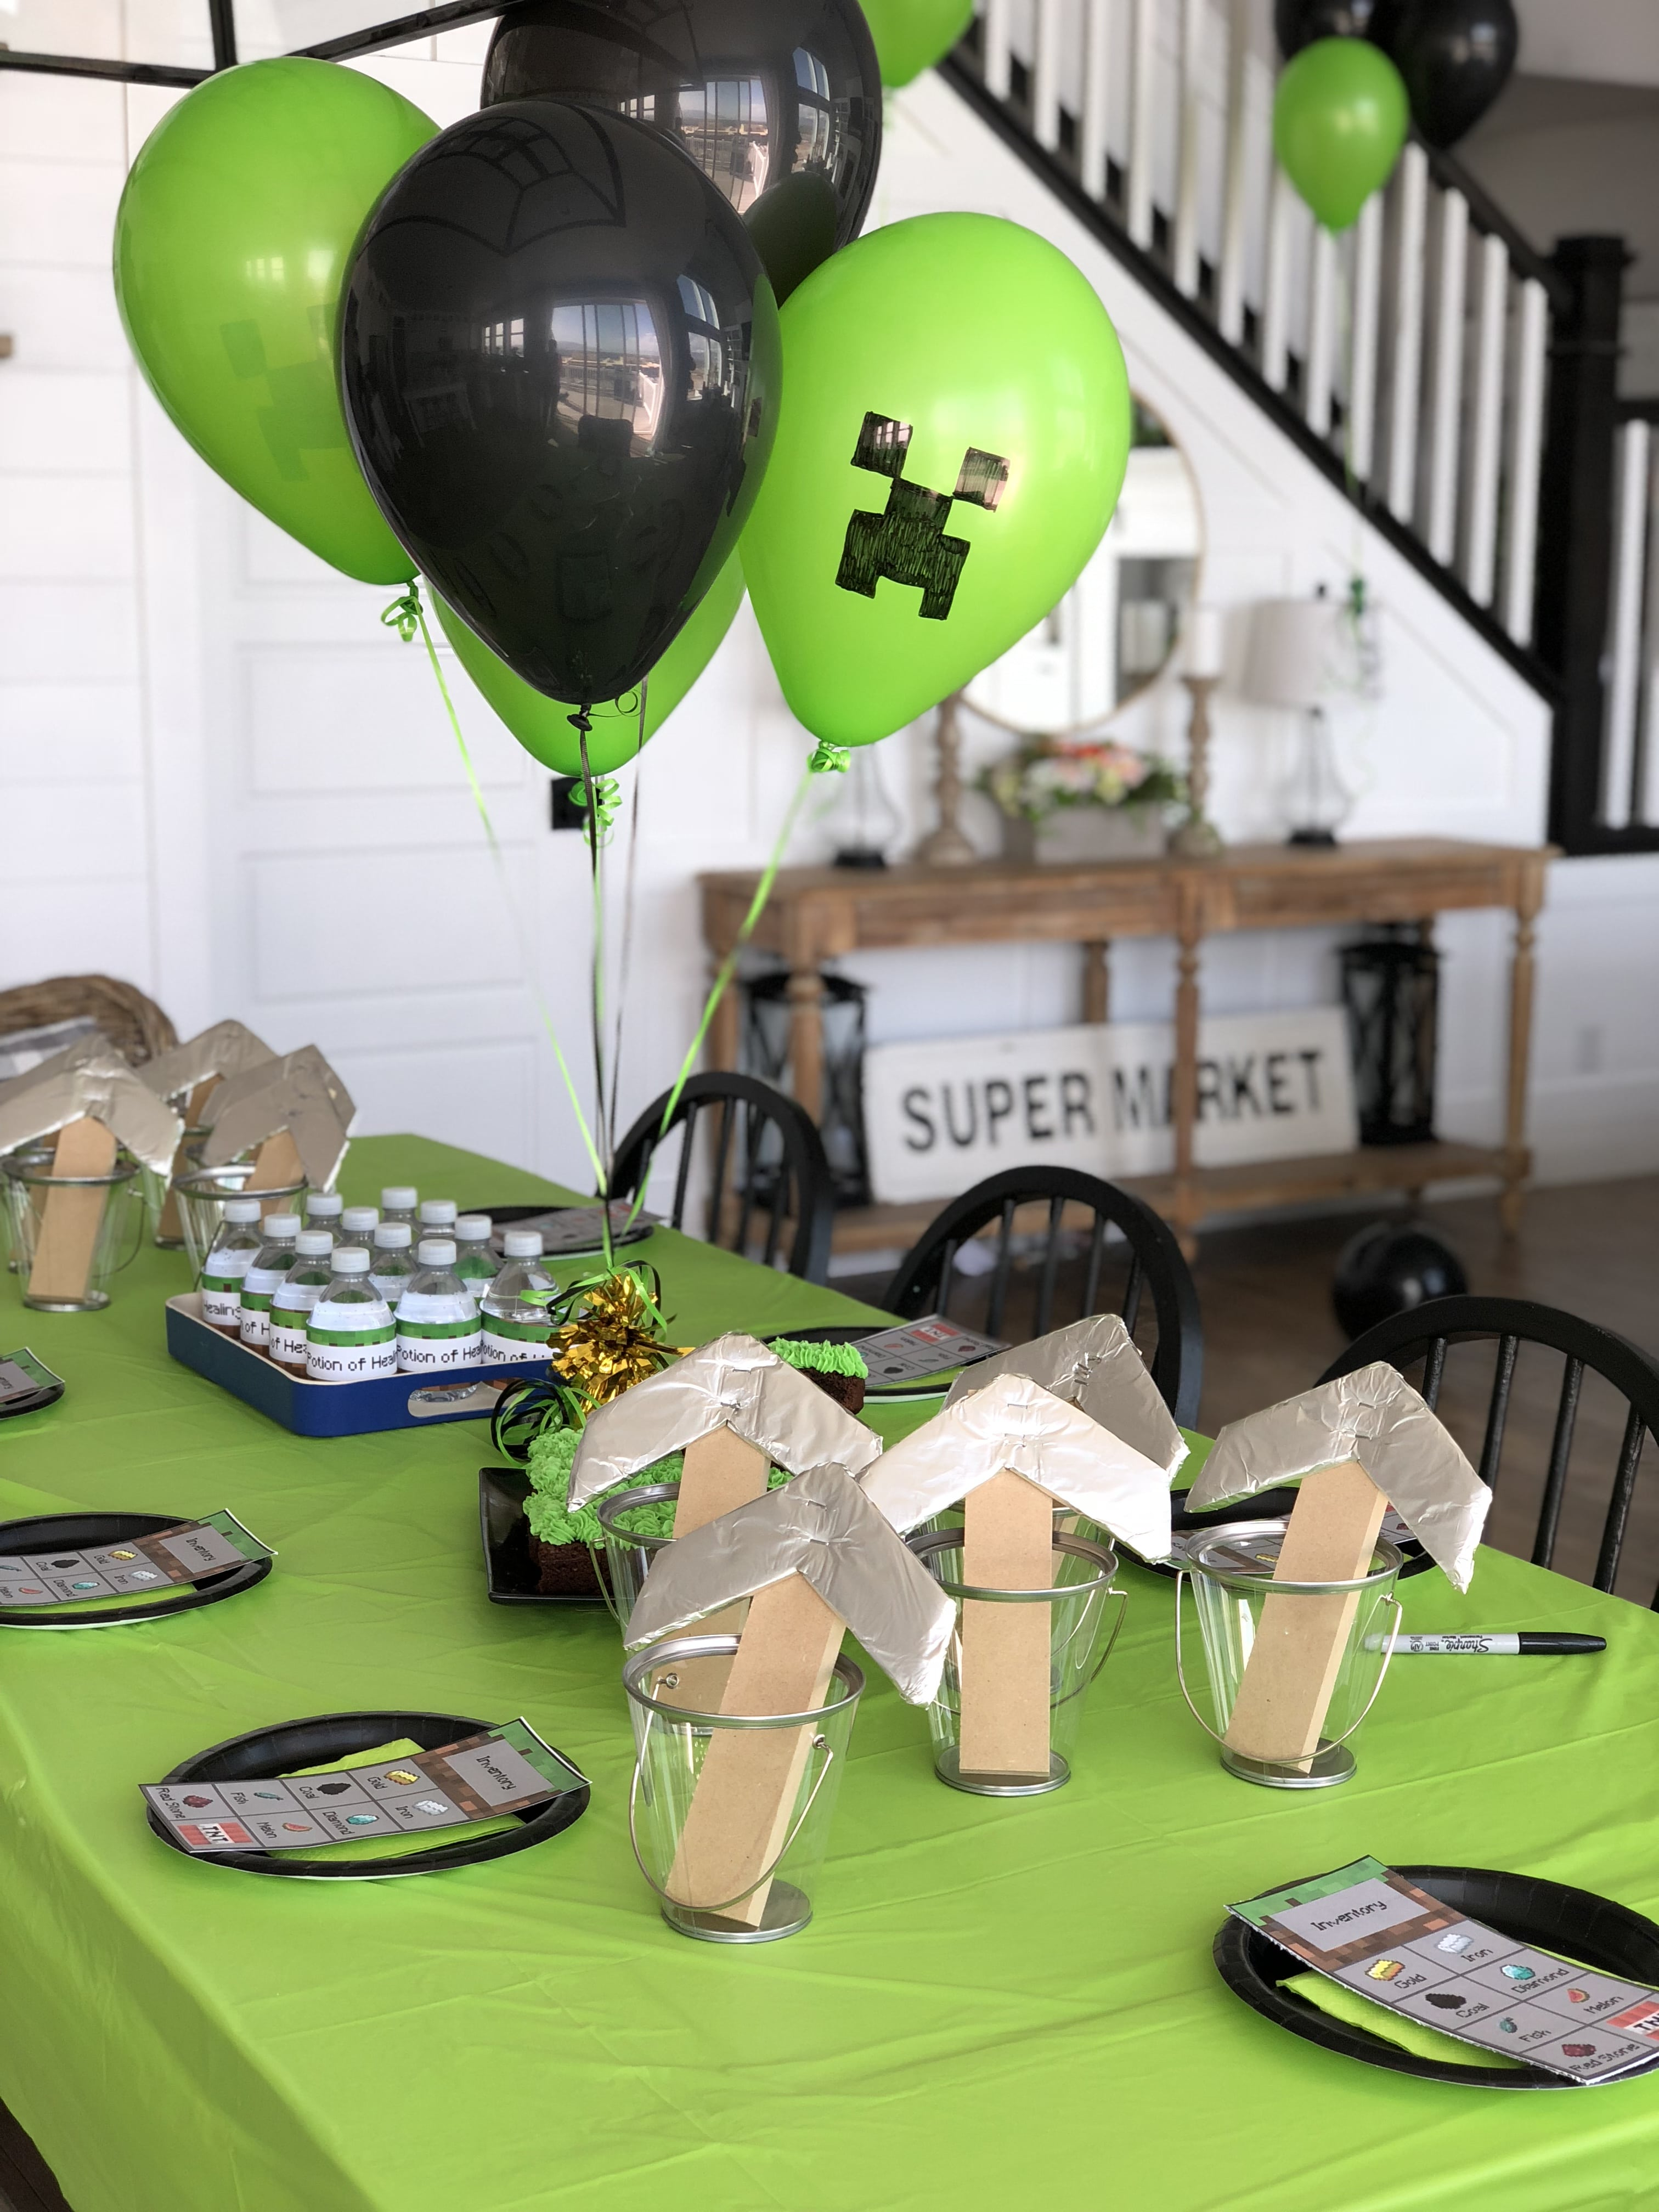 photograph regarding Minecraft Party Ideas Printable named Minecraft Birthday Social gathering with Totally free Printables - Honeybear Lane